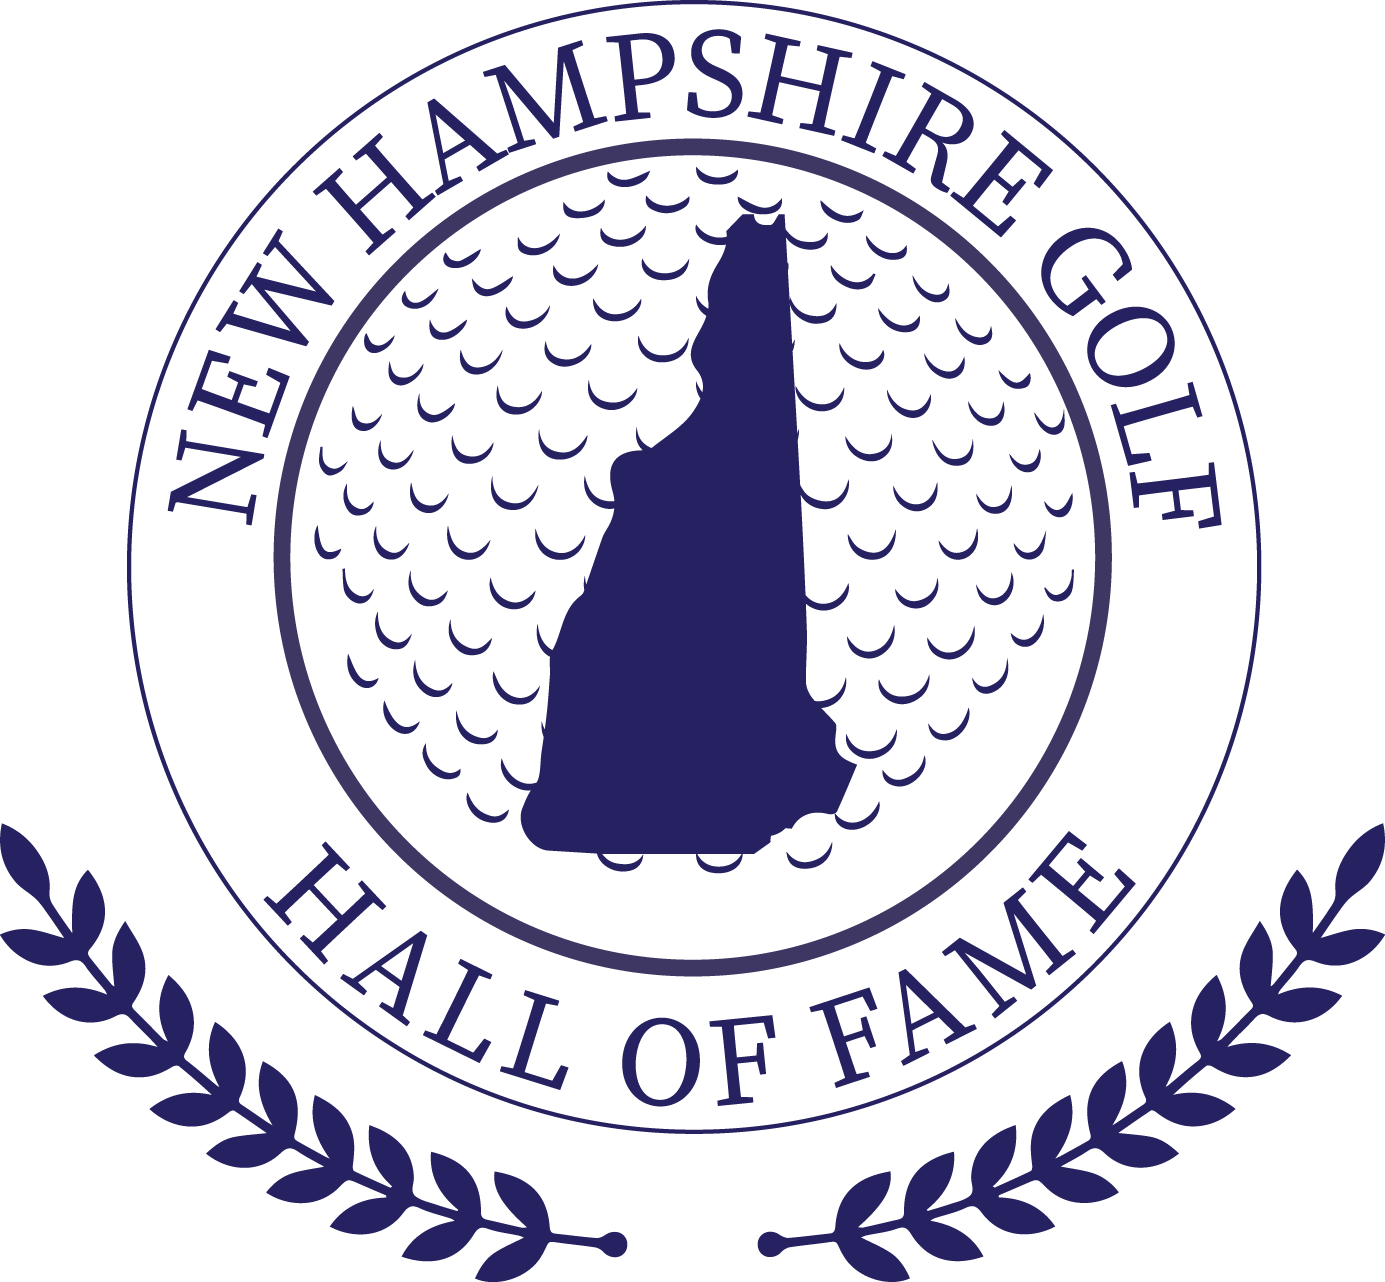 New Hampshire Golf Hall of Fame Induction Ceremony